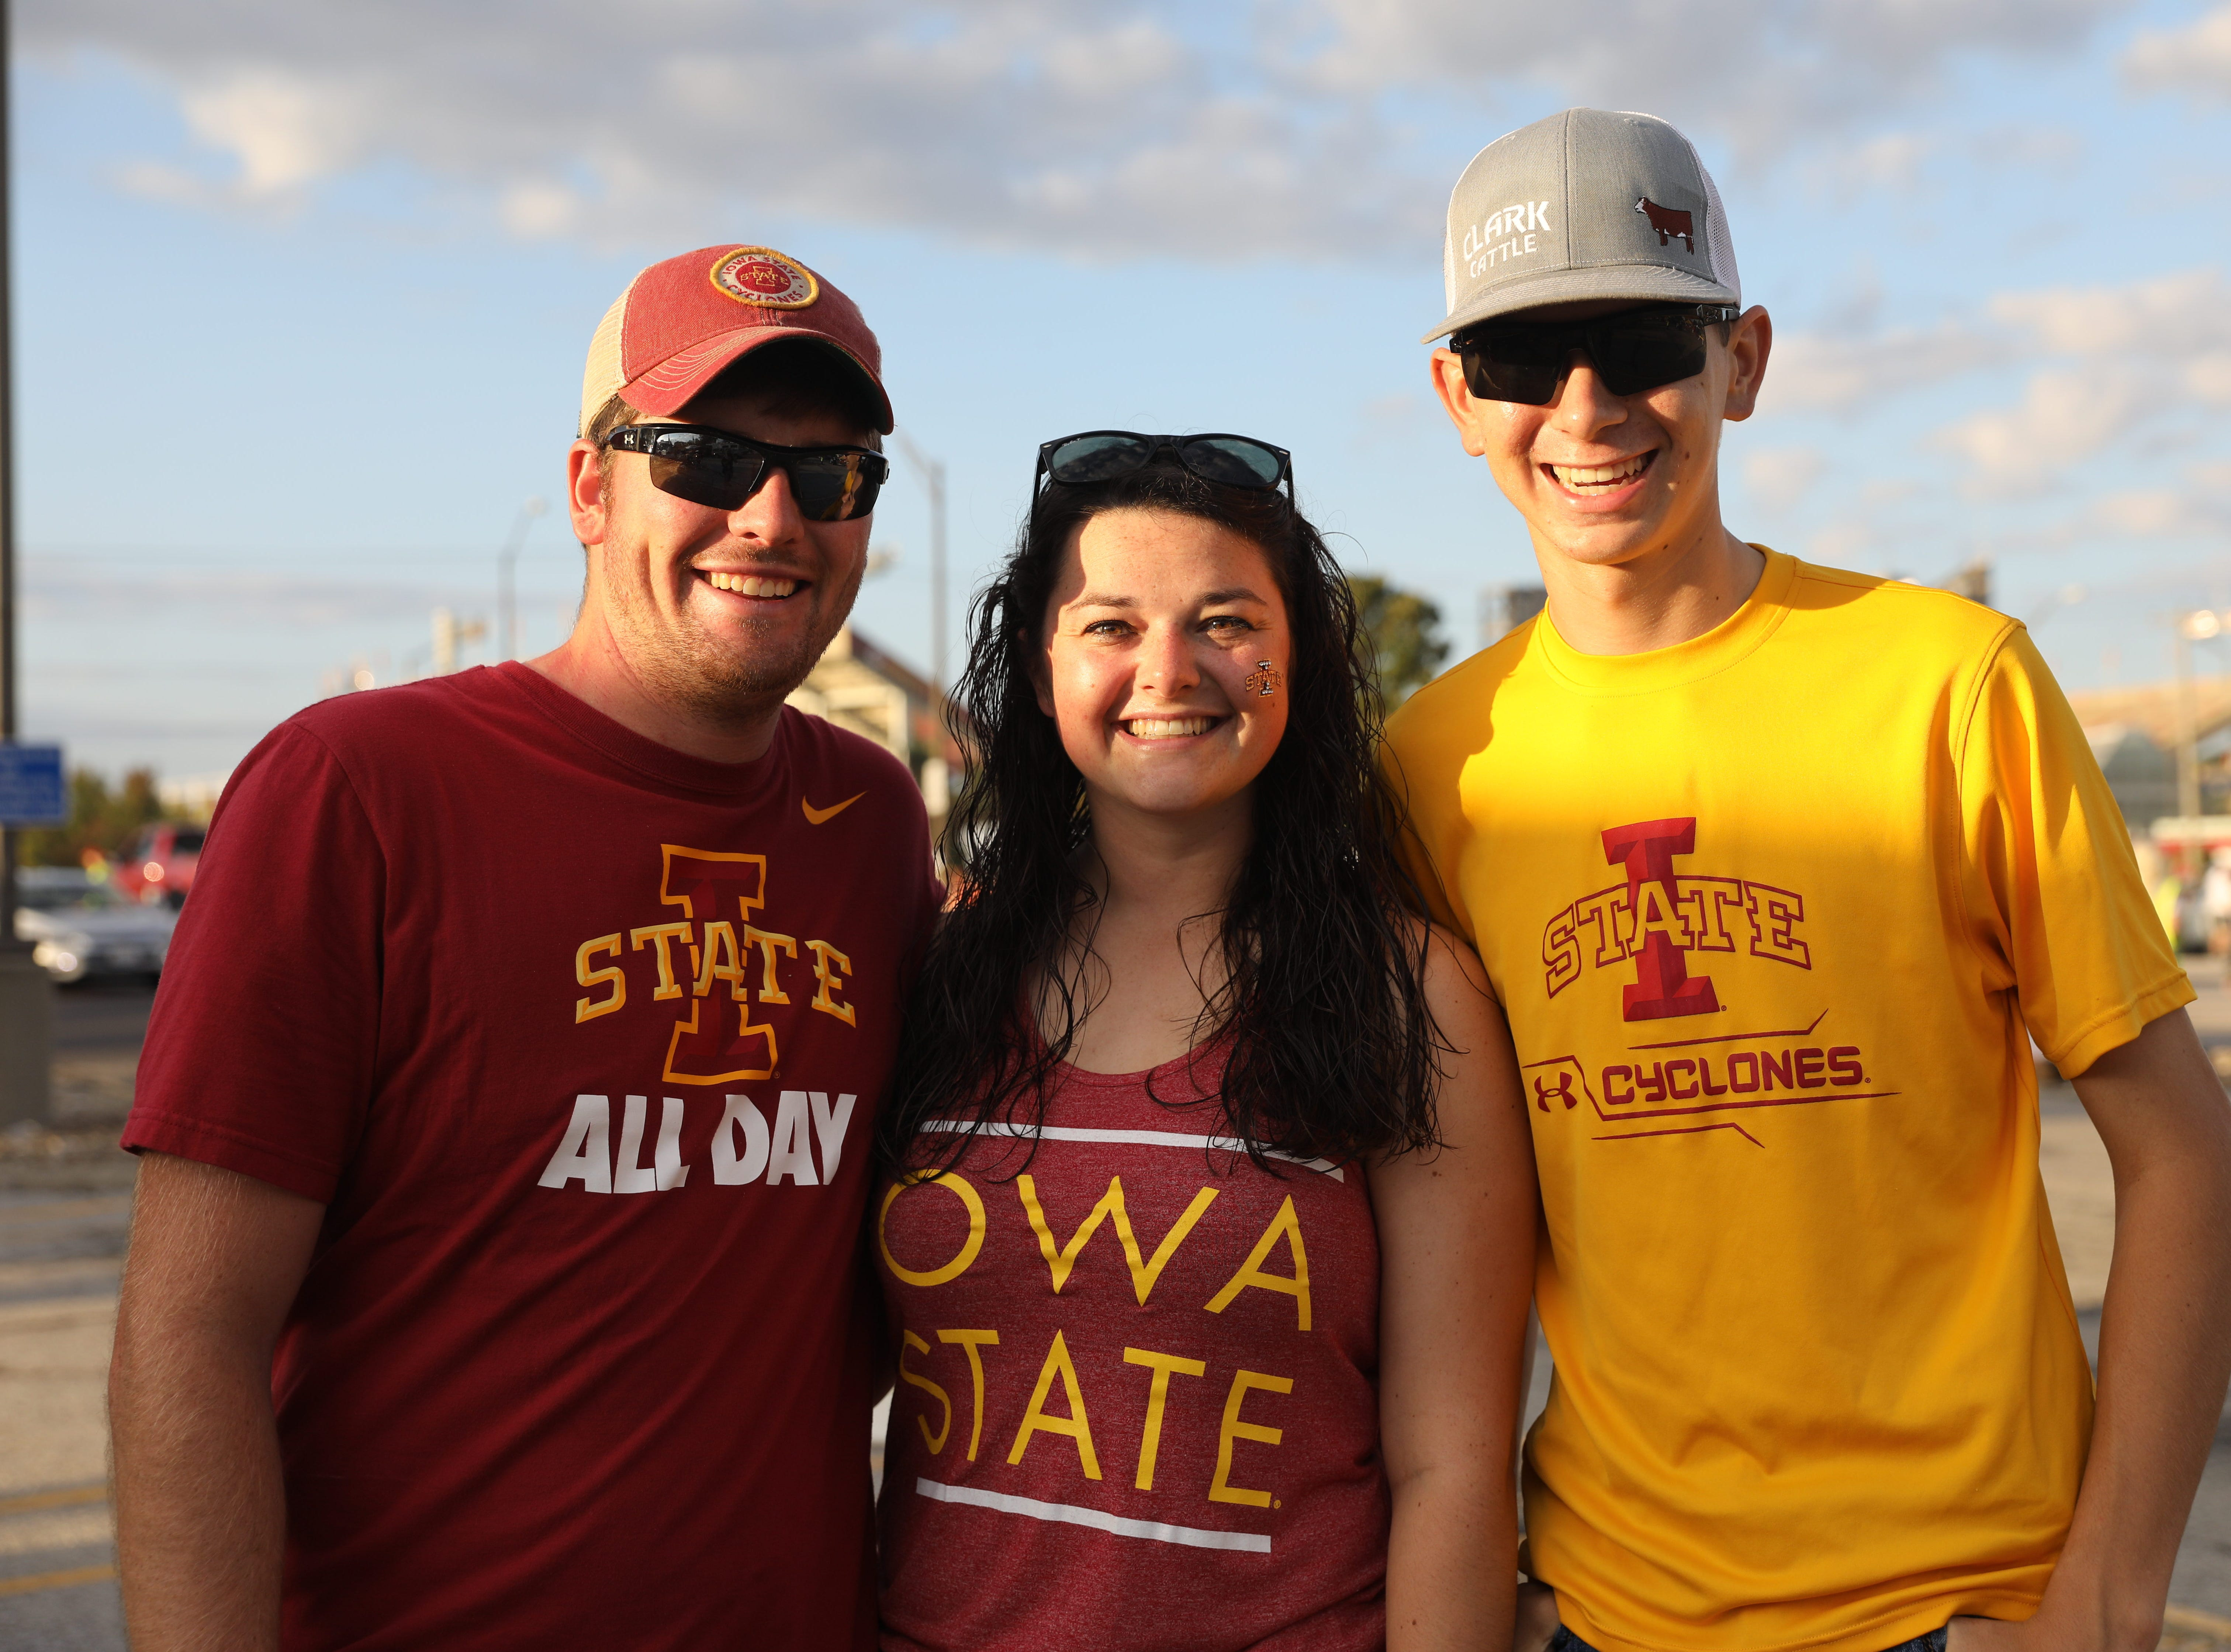 Andy Henderson, 23, of Albia (from left), Sarah Clark, 21, of Ames, and Curtis Clark, 16, of Albia, Saturday, Sept. 15, 2018, before the Iowa State football game against Oklahoma in Ames.